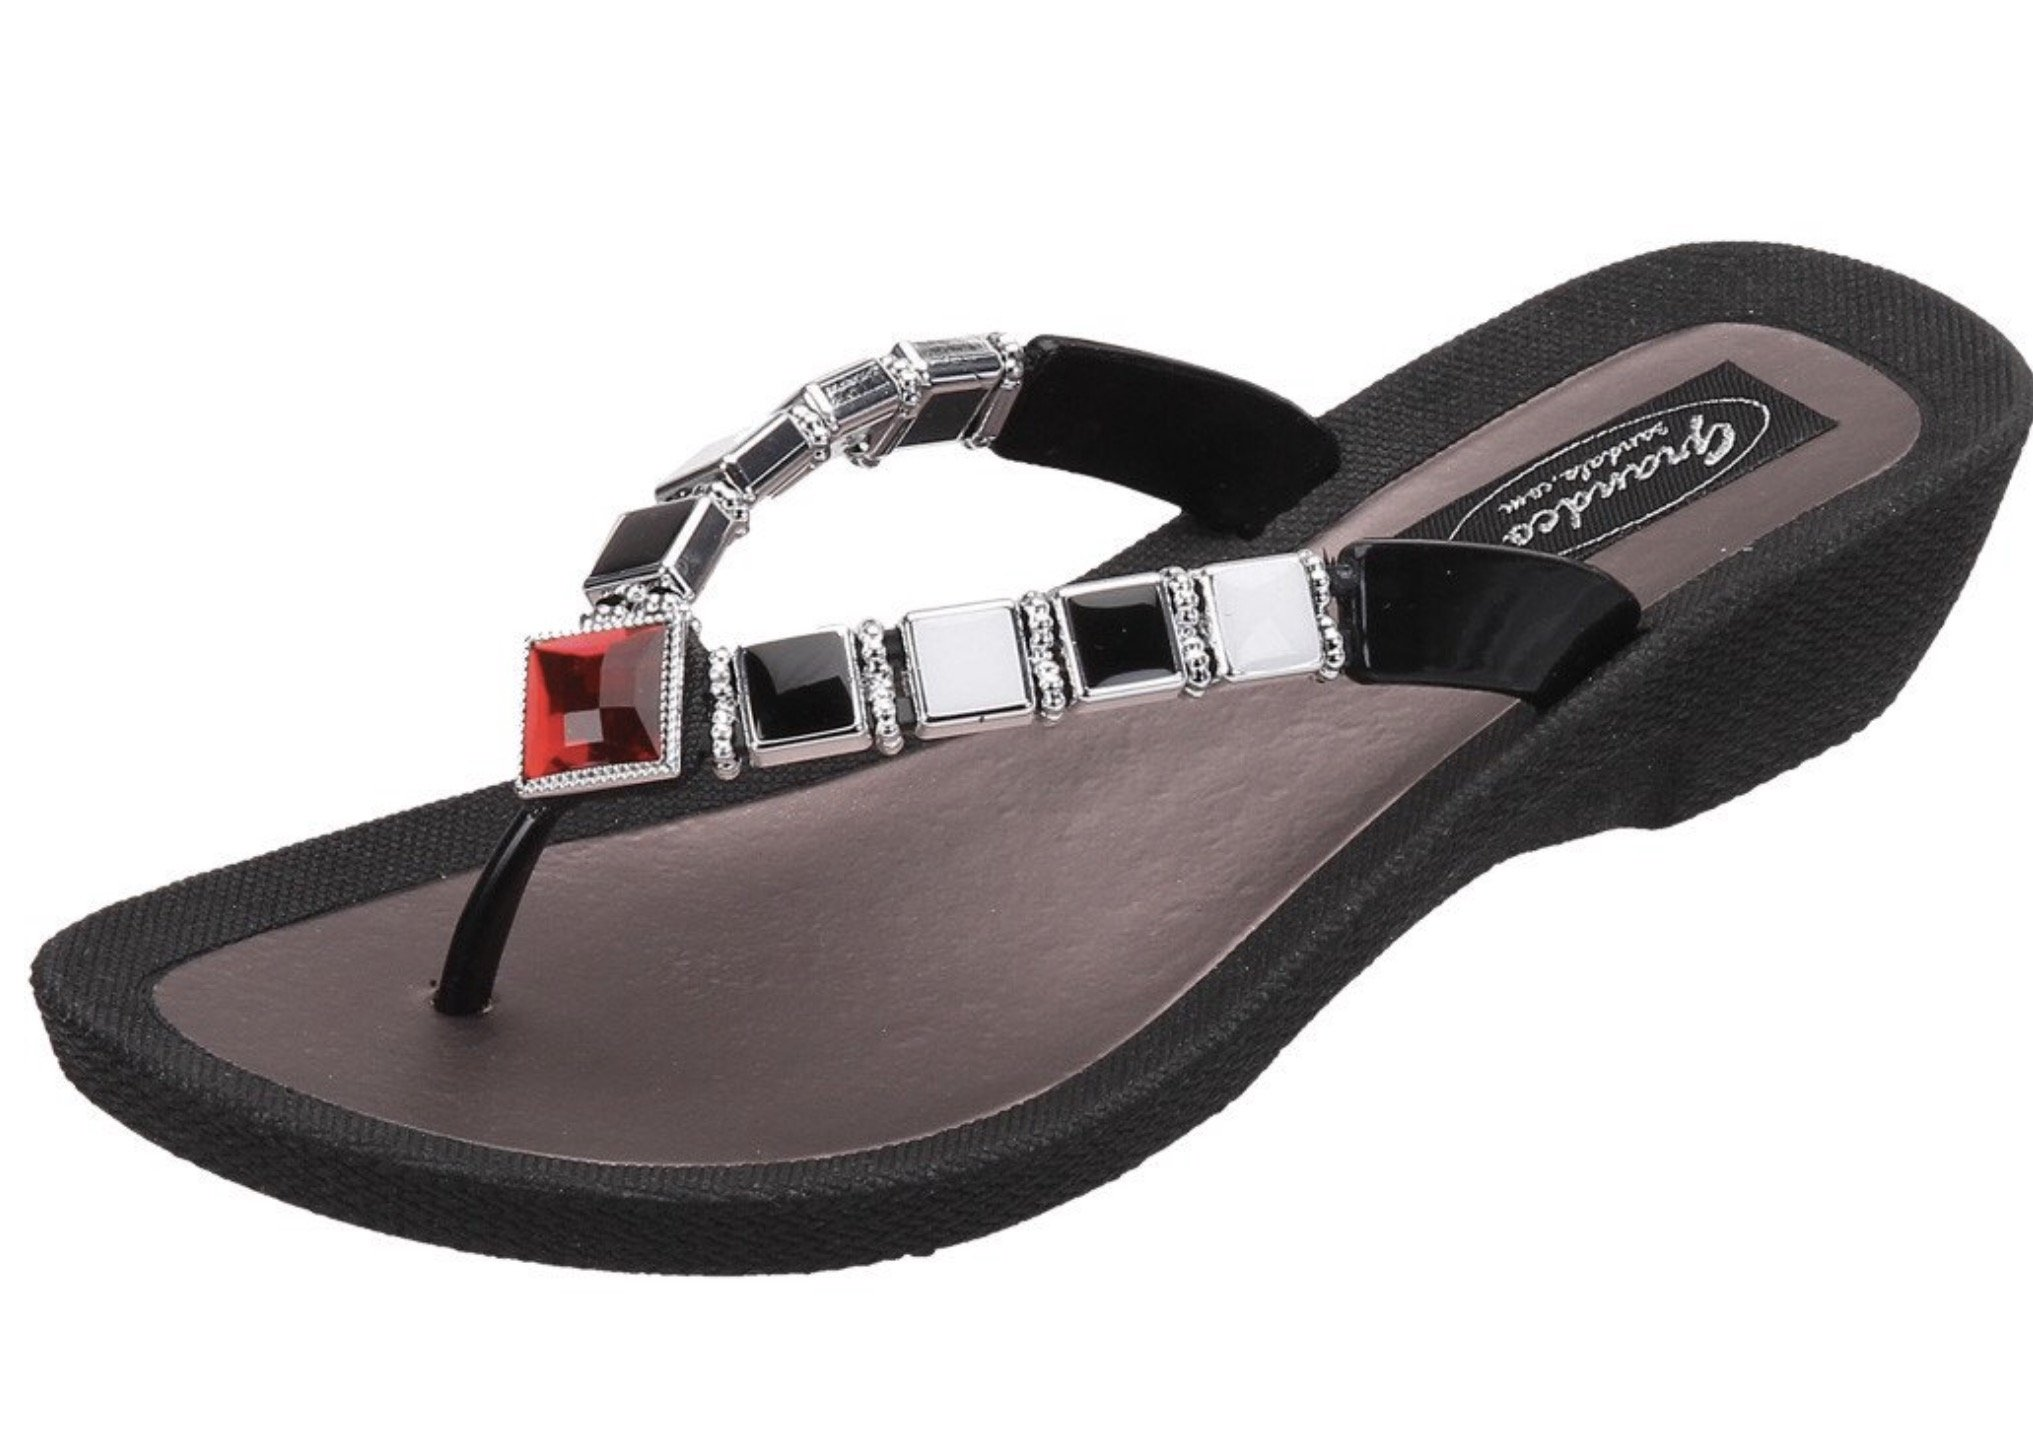 Grandco Ruby Sandals Size 8